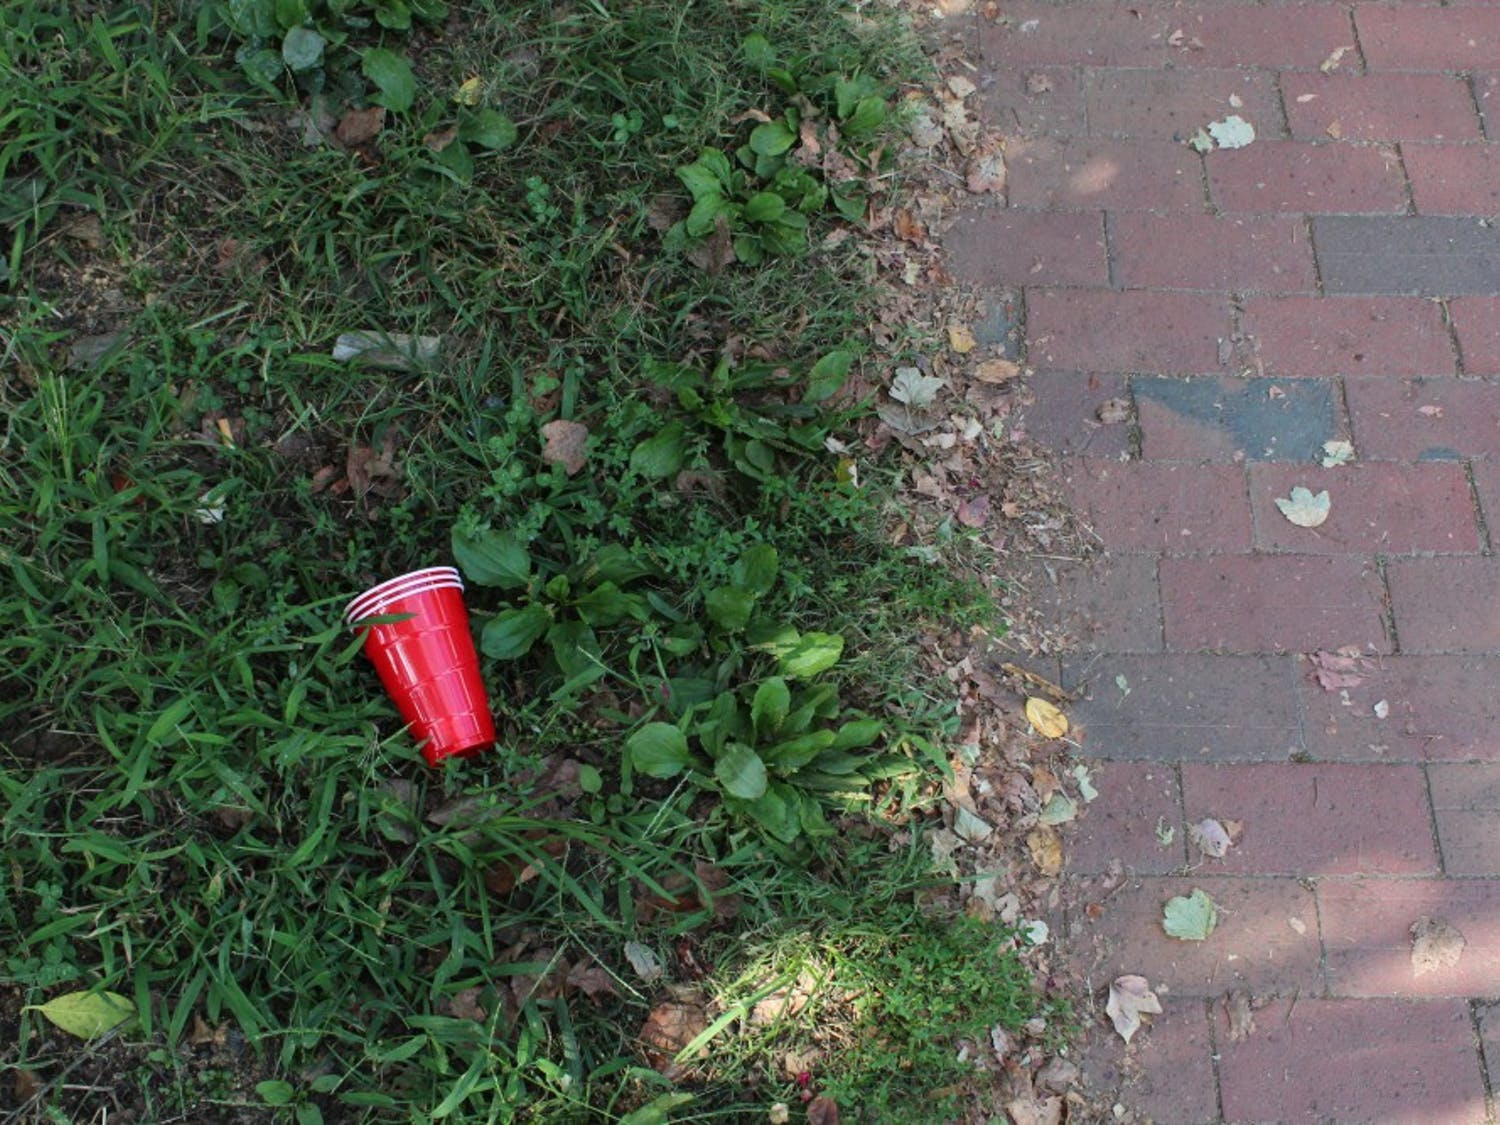 """Cups get abandoned on lawns by Fraternity Court on Tuesday, Oct. 9, 2018. """"If a student gets charged with an alcohol offense, they do not have to immediately rush out there and spend $500 on an attorney,"""" Tristan Routh said. """"They can go in on their own very easily and just ask for a deferred prosecution agreement."""""""